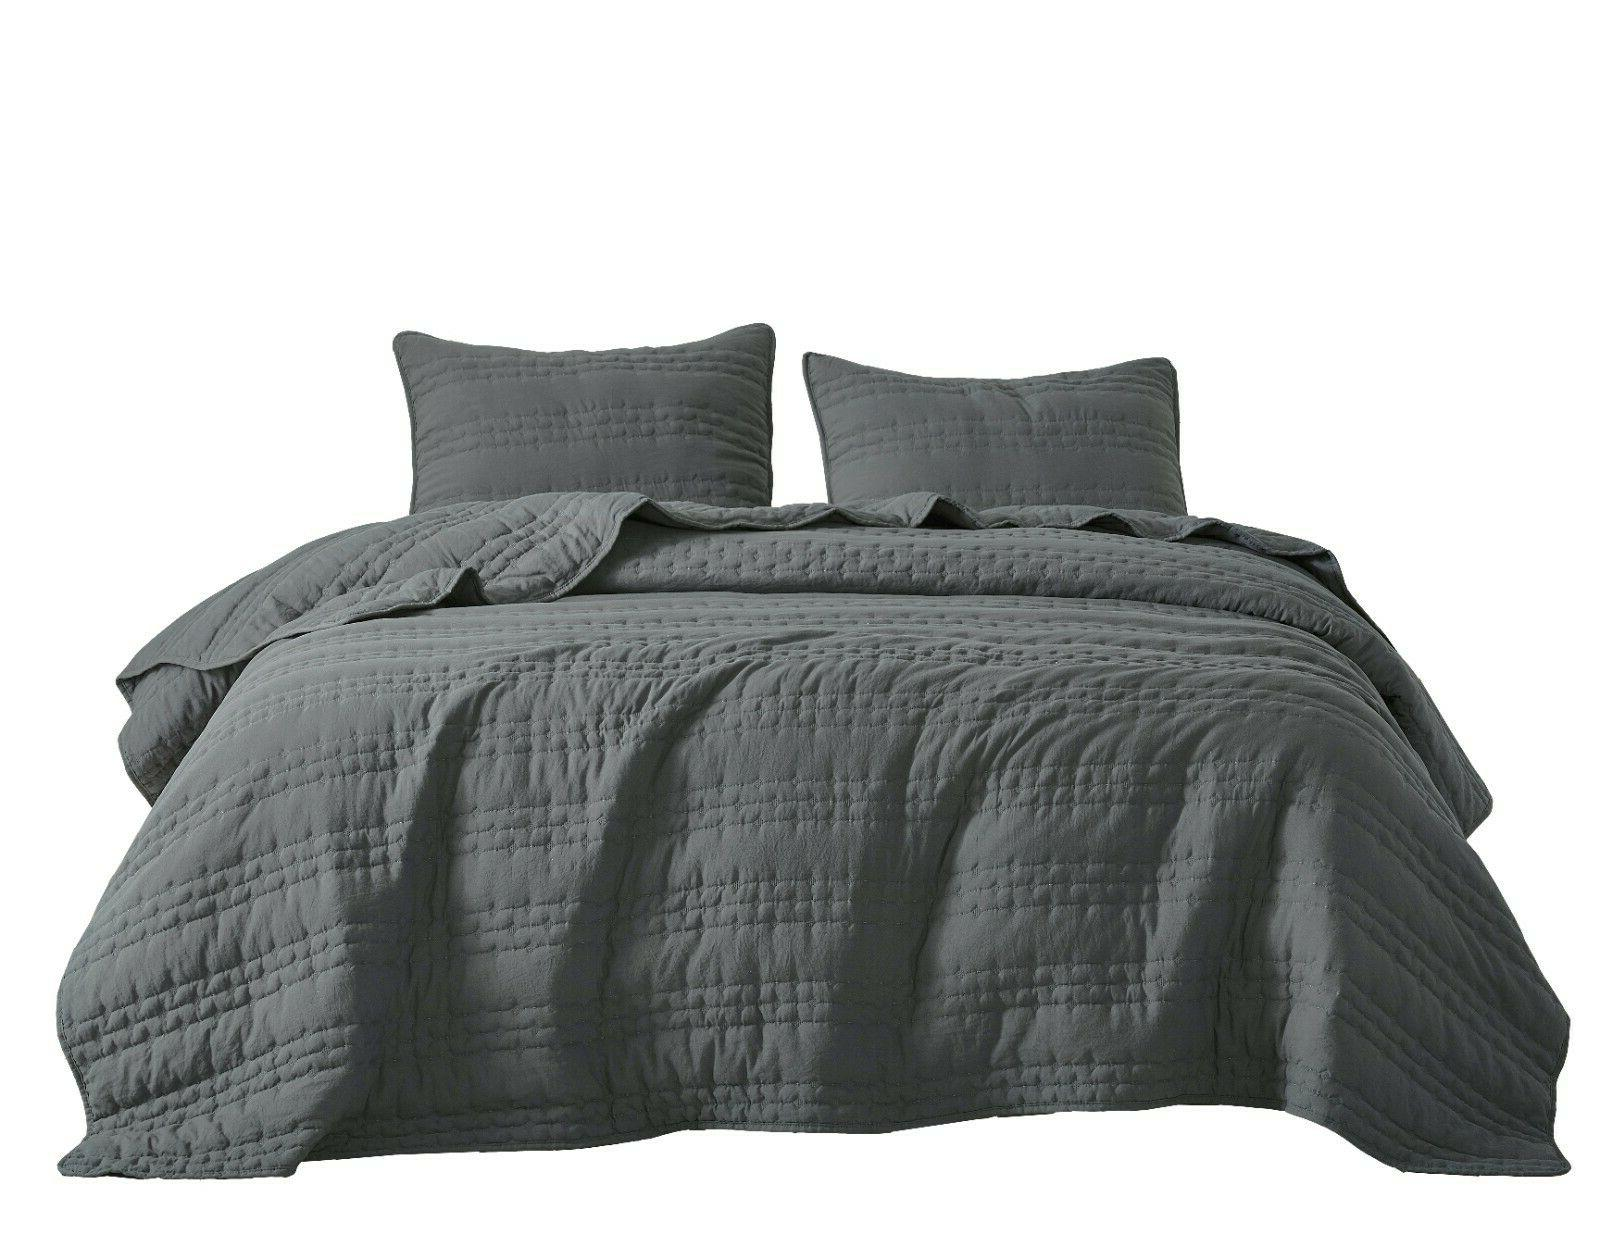 3pc Quilted Charcoal Stonish Bedspread Stone-Washed, Bed